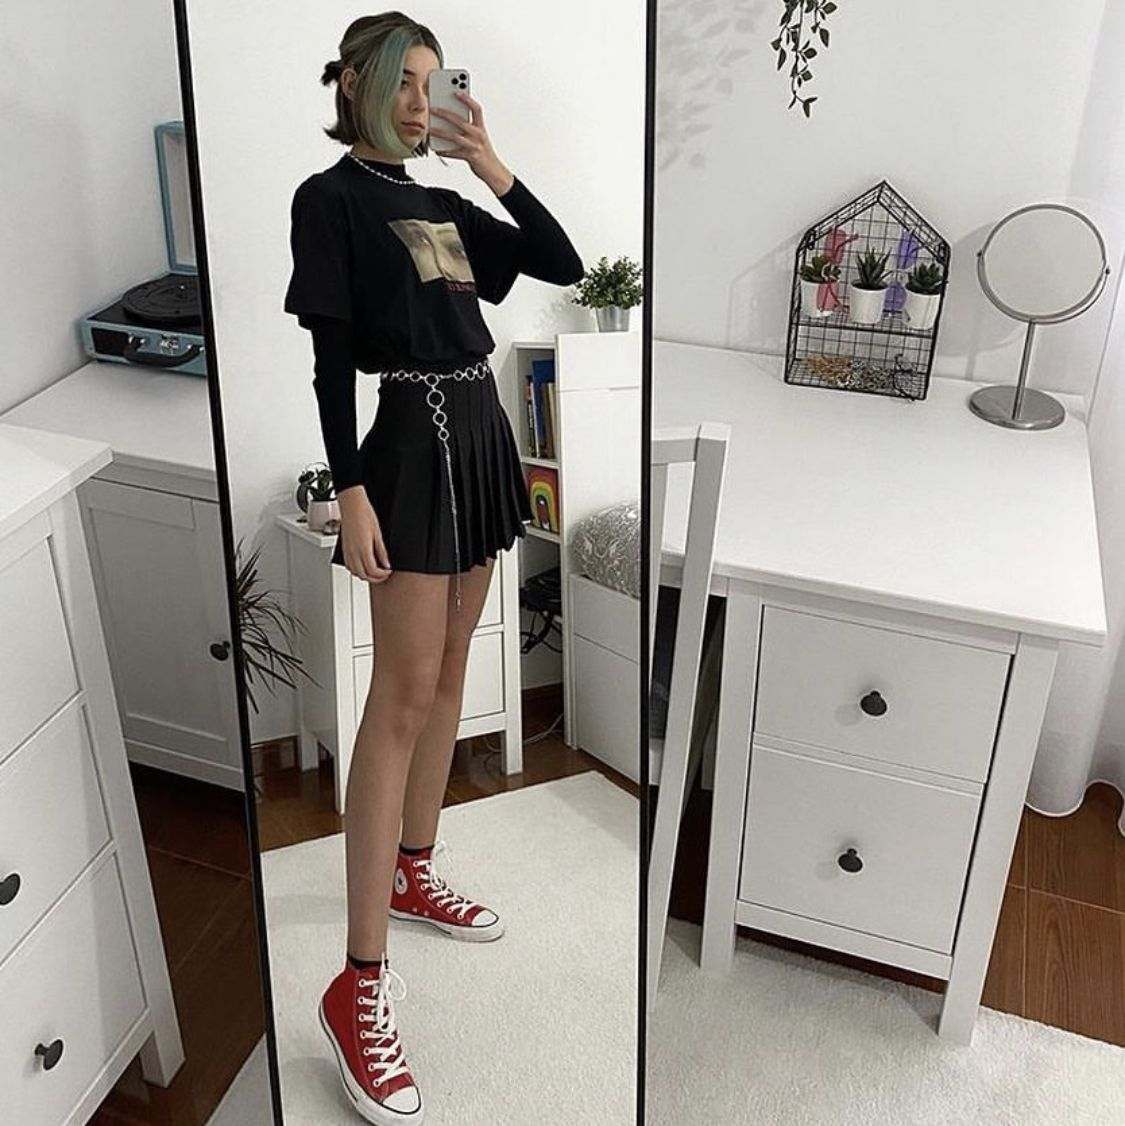 Breeze Tennis Skirt From Shop Tmp Style Grunge Outfit Of The Day Mirror Selfie Ootd Pleate In 2020 Black Pleated Skirt Outfit Black Skirt Outfits Tennis Skirt Outfit